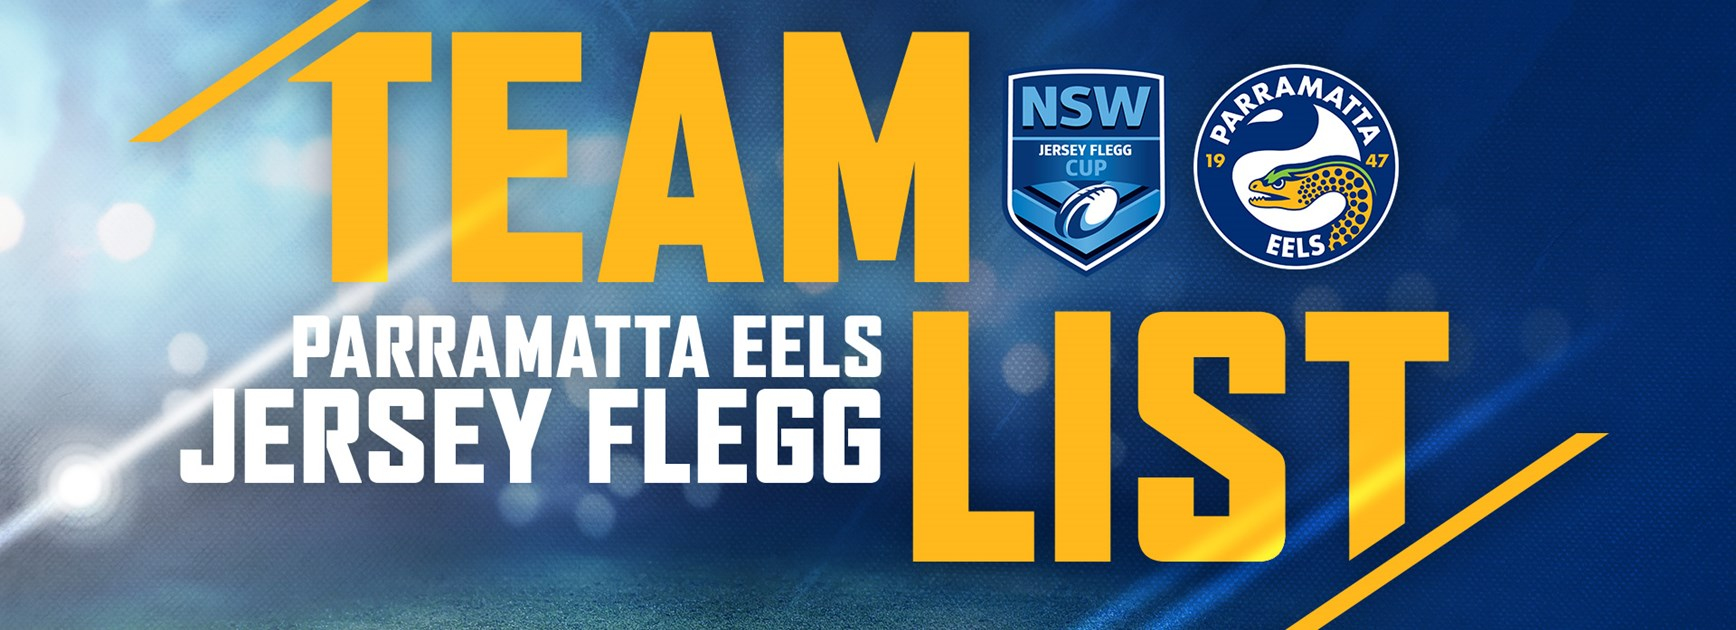 Eels Jersey Flegg Round Eight Team List